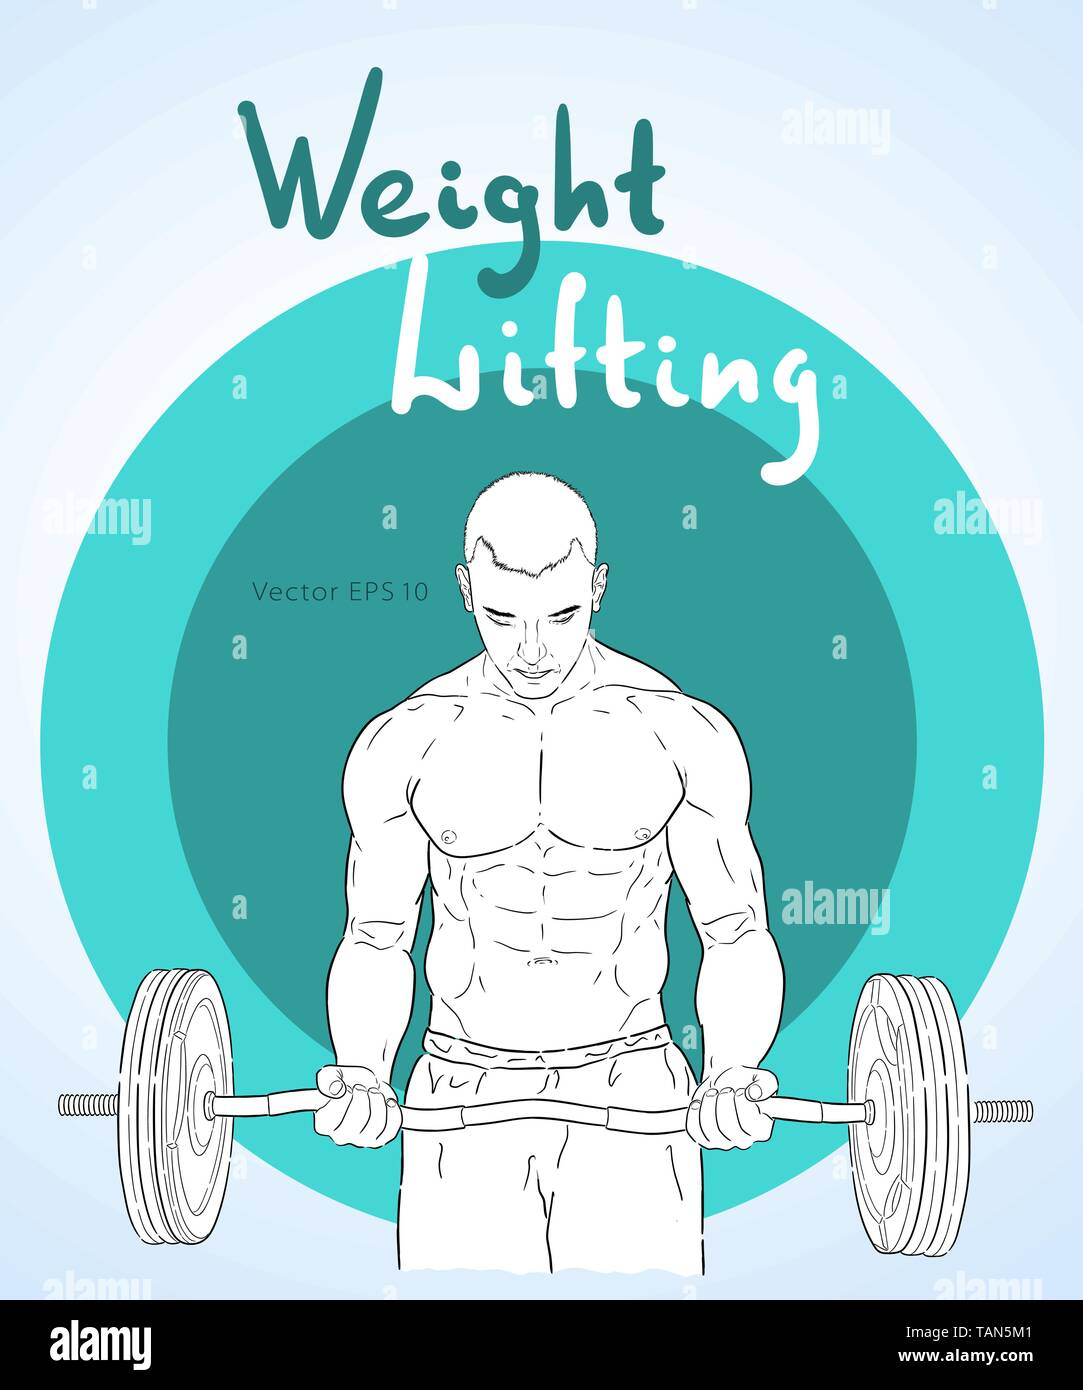 Weight Lifter man lifting heavy weight for Sports. - Stock Vector